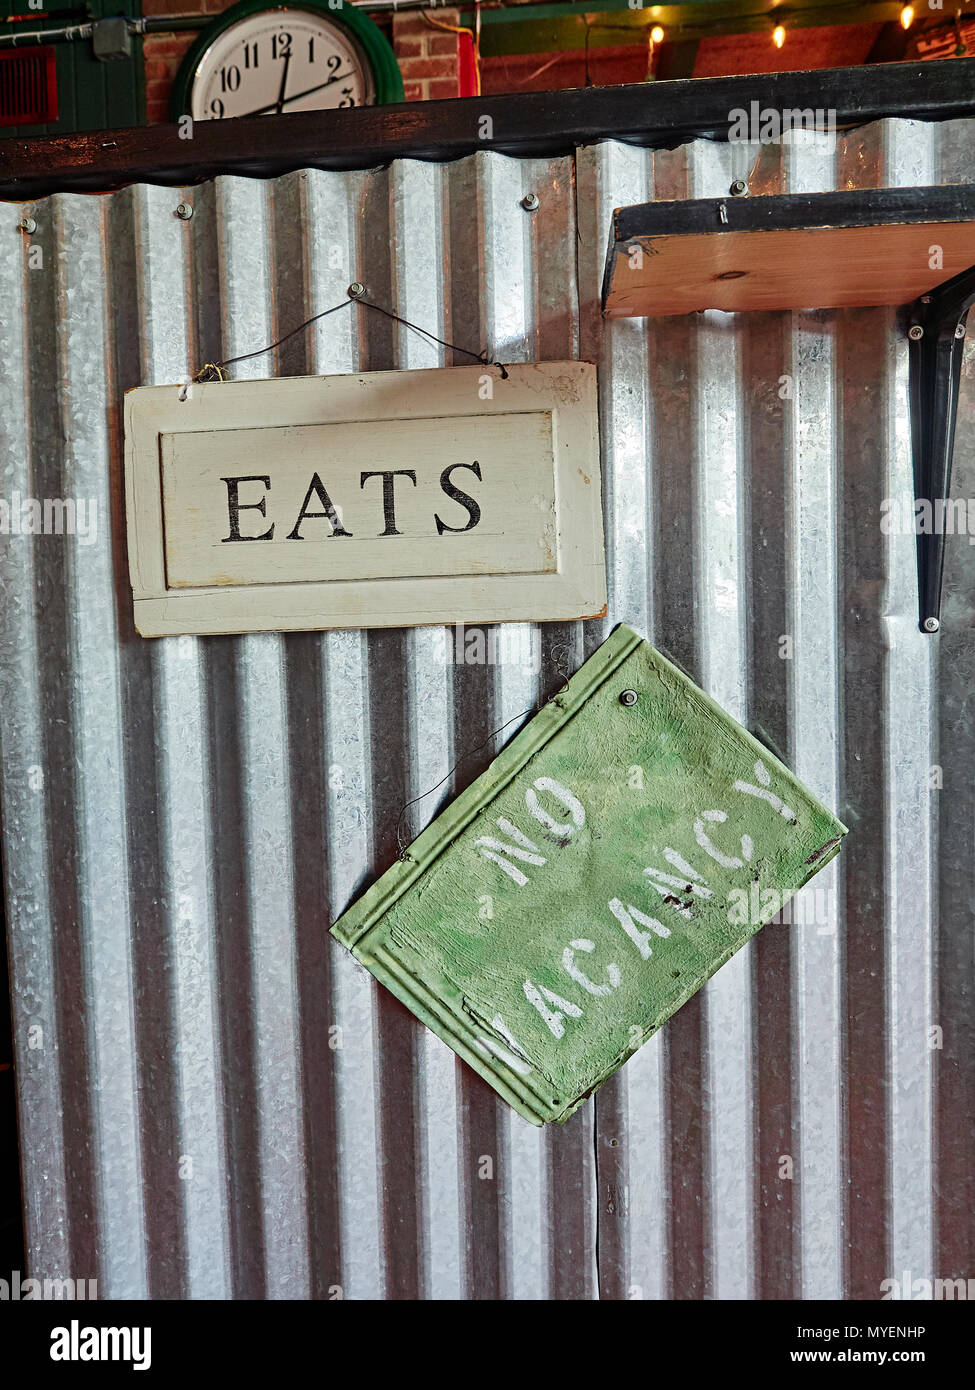 Eats and No Vacancy sign or signs hanging on restaurant wall for     Eats and No Vacancy sign or signs hanging on restaurant wall for interior  design in a hip college town restaurant in Auburn Alabama  USA